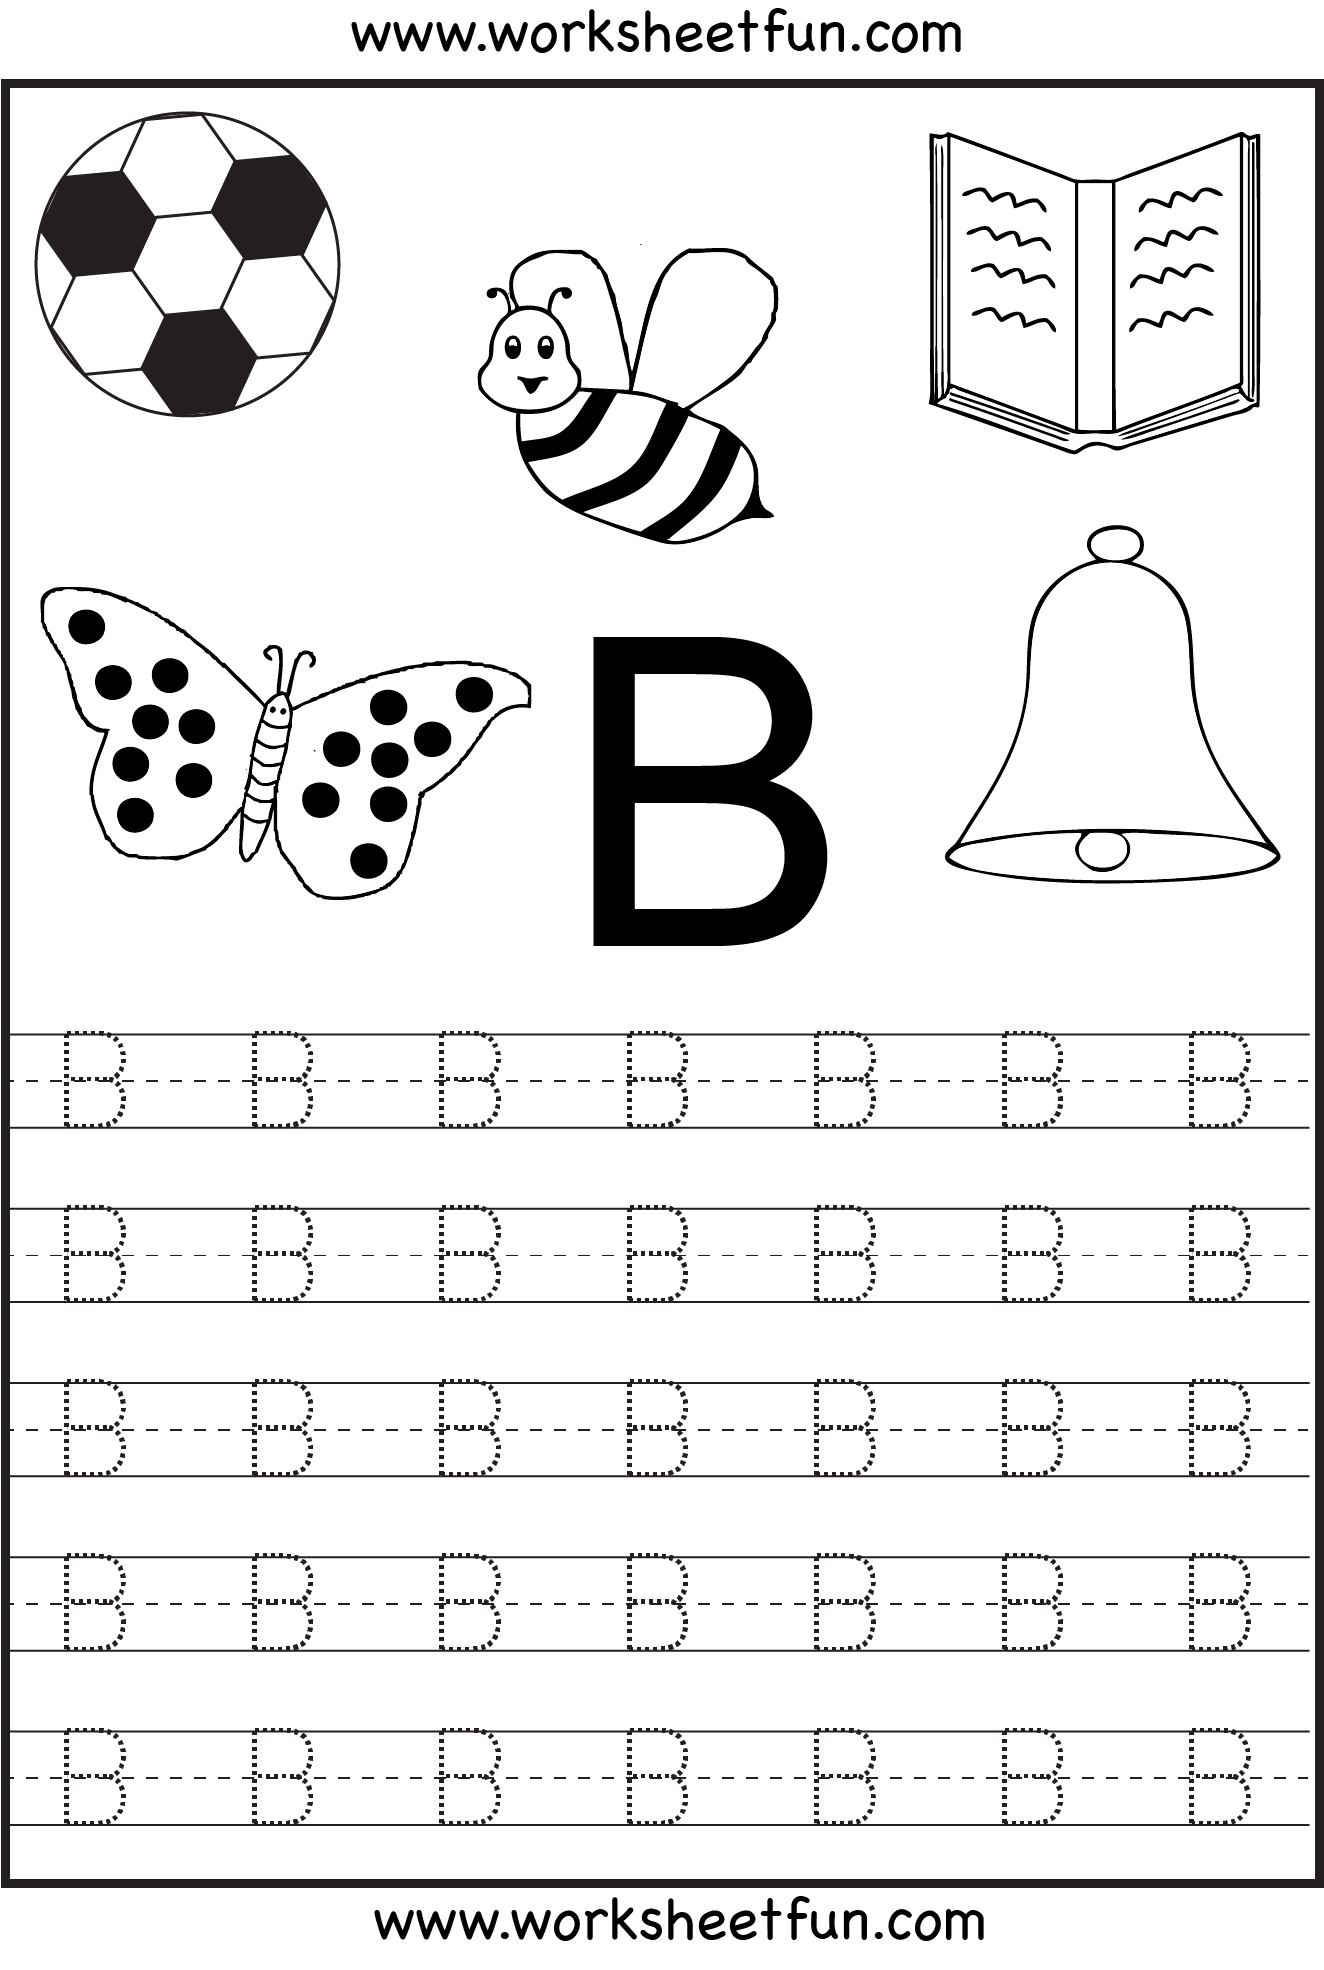 Printables Letter B Worksheets Kindergarten kindergarten letter b writing practice worksheet printable free tracing worksheets for 26 worksheets